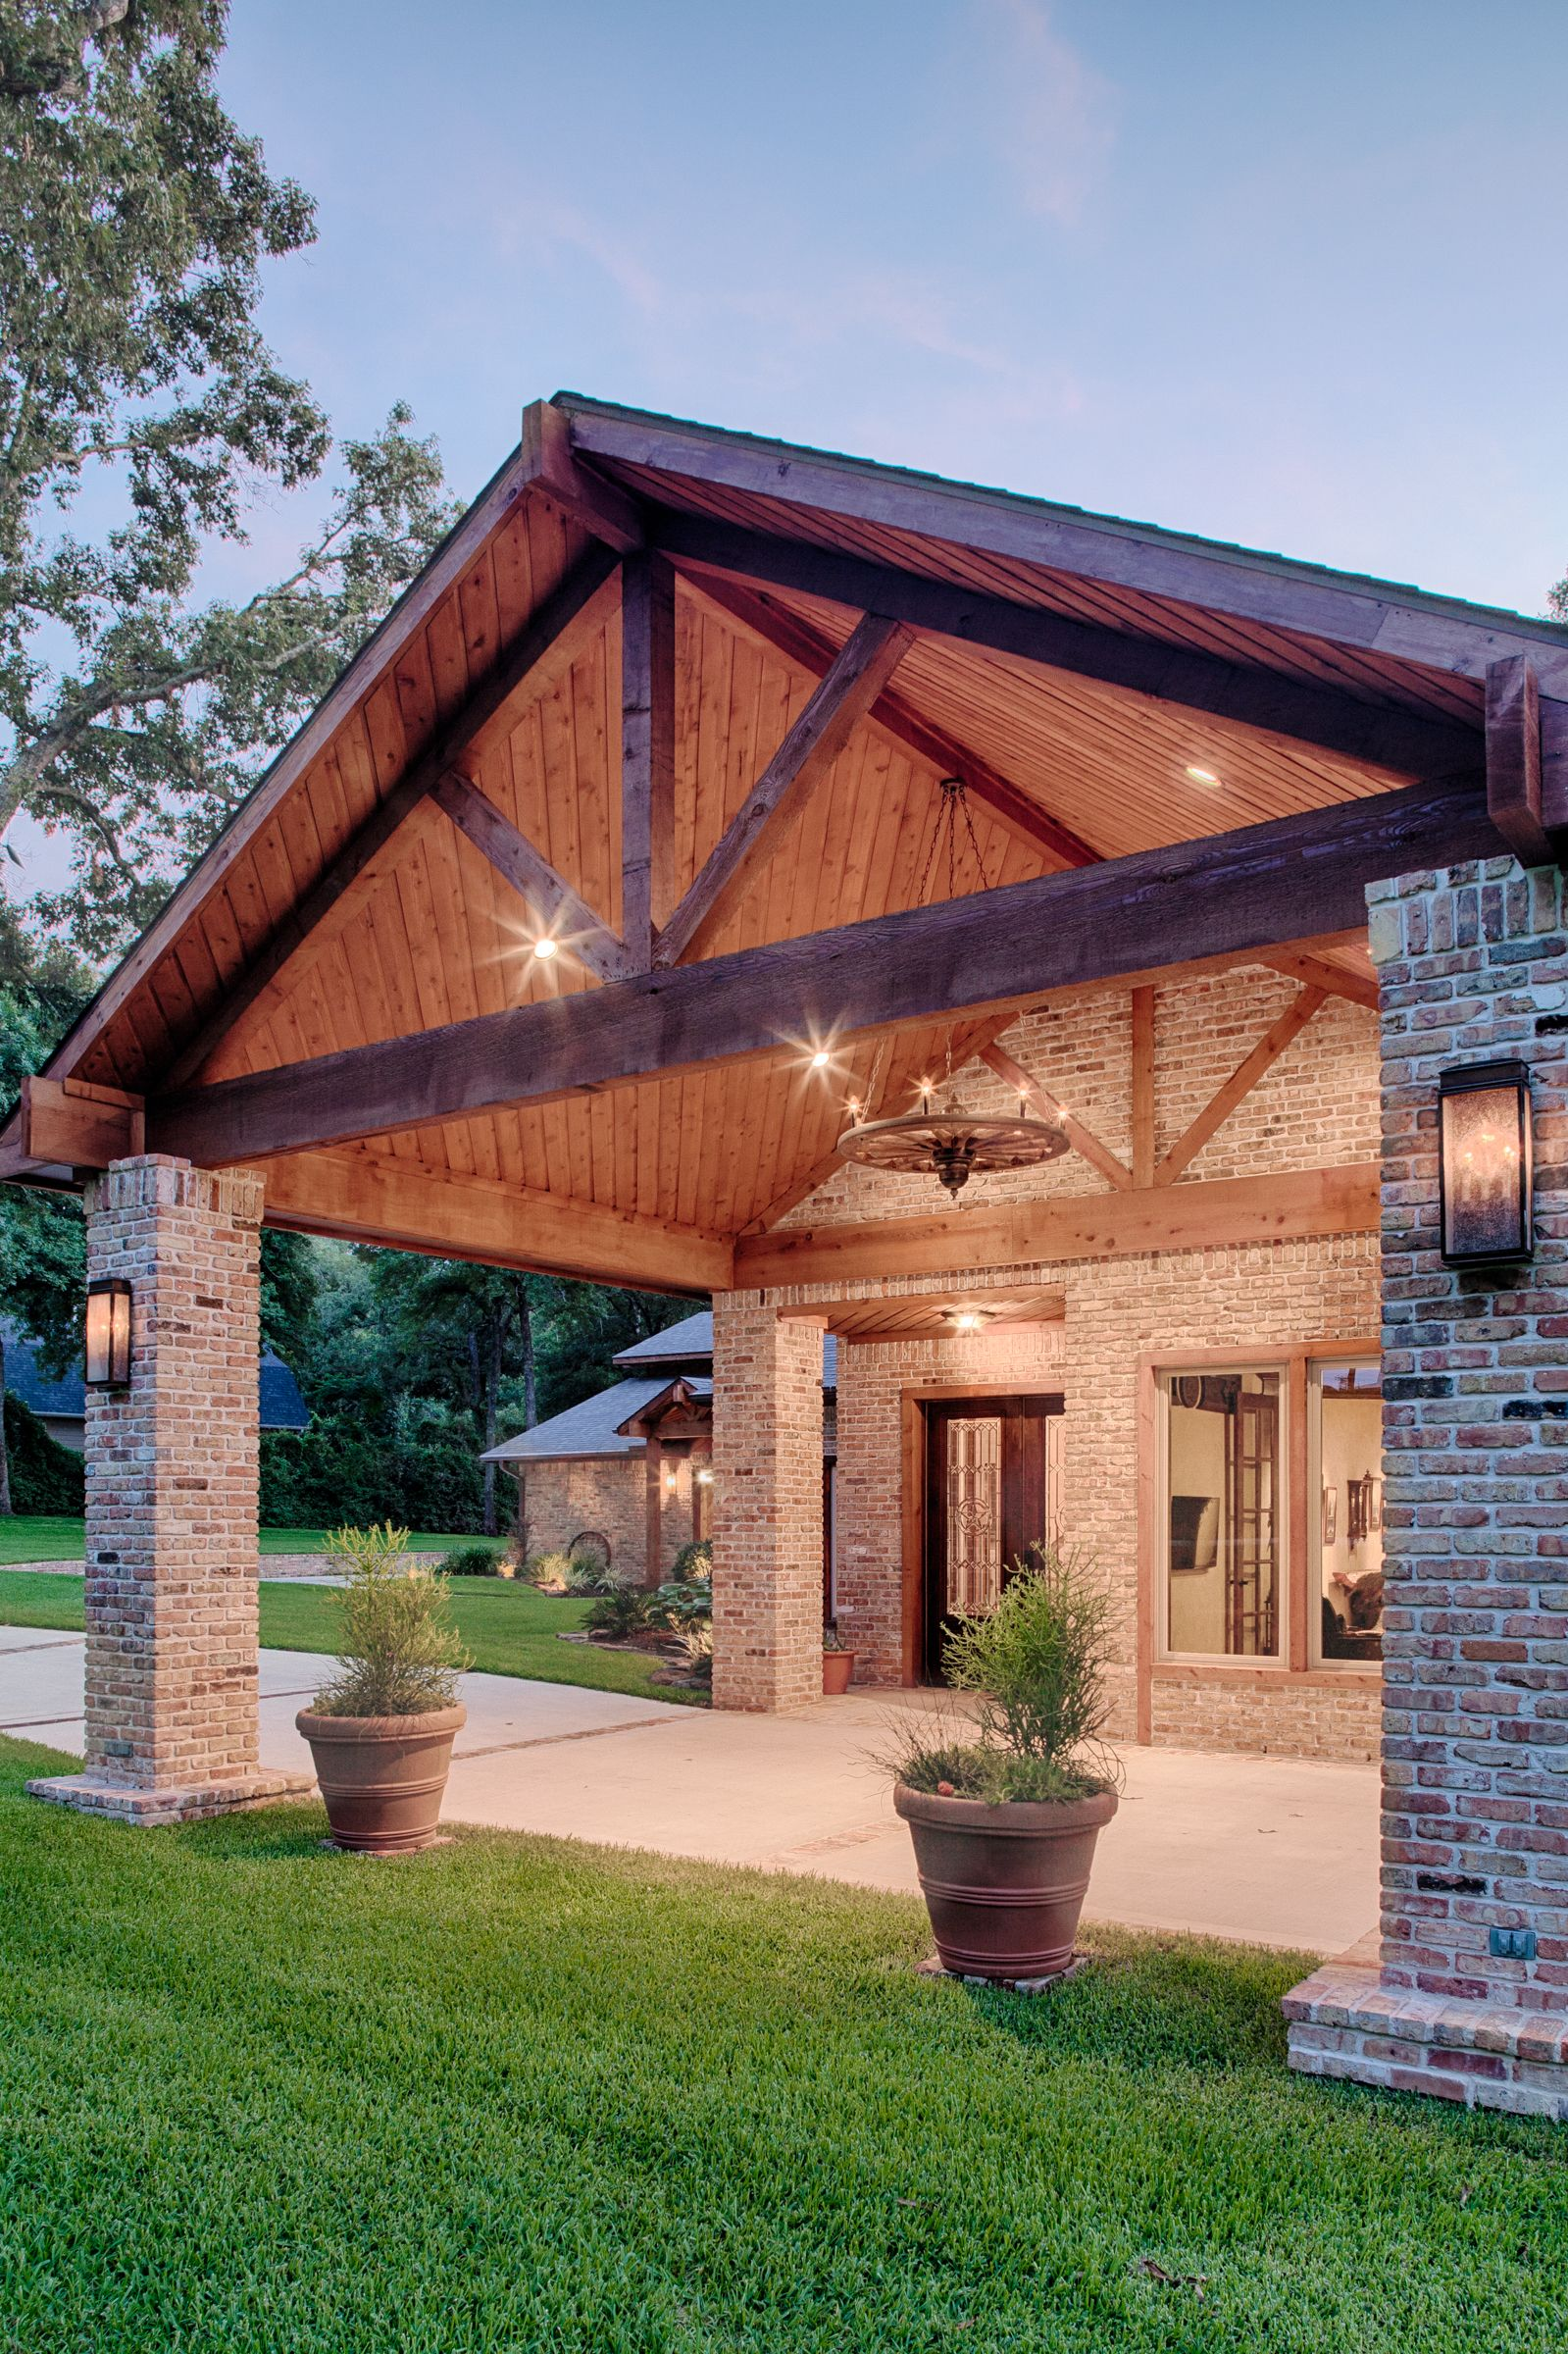 Pin By Dea Daniels On Tomball Transformation Backyard Pavilion